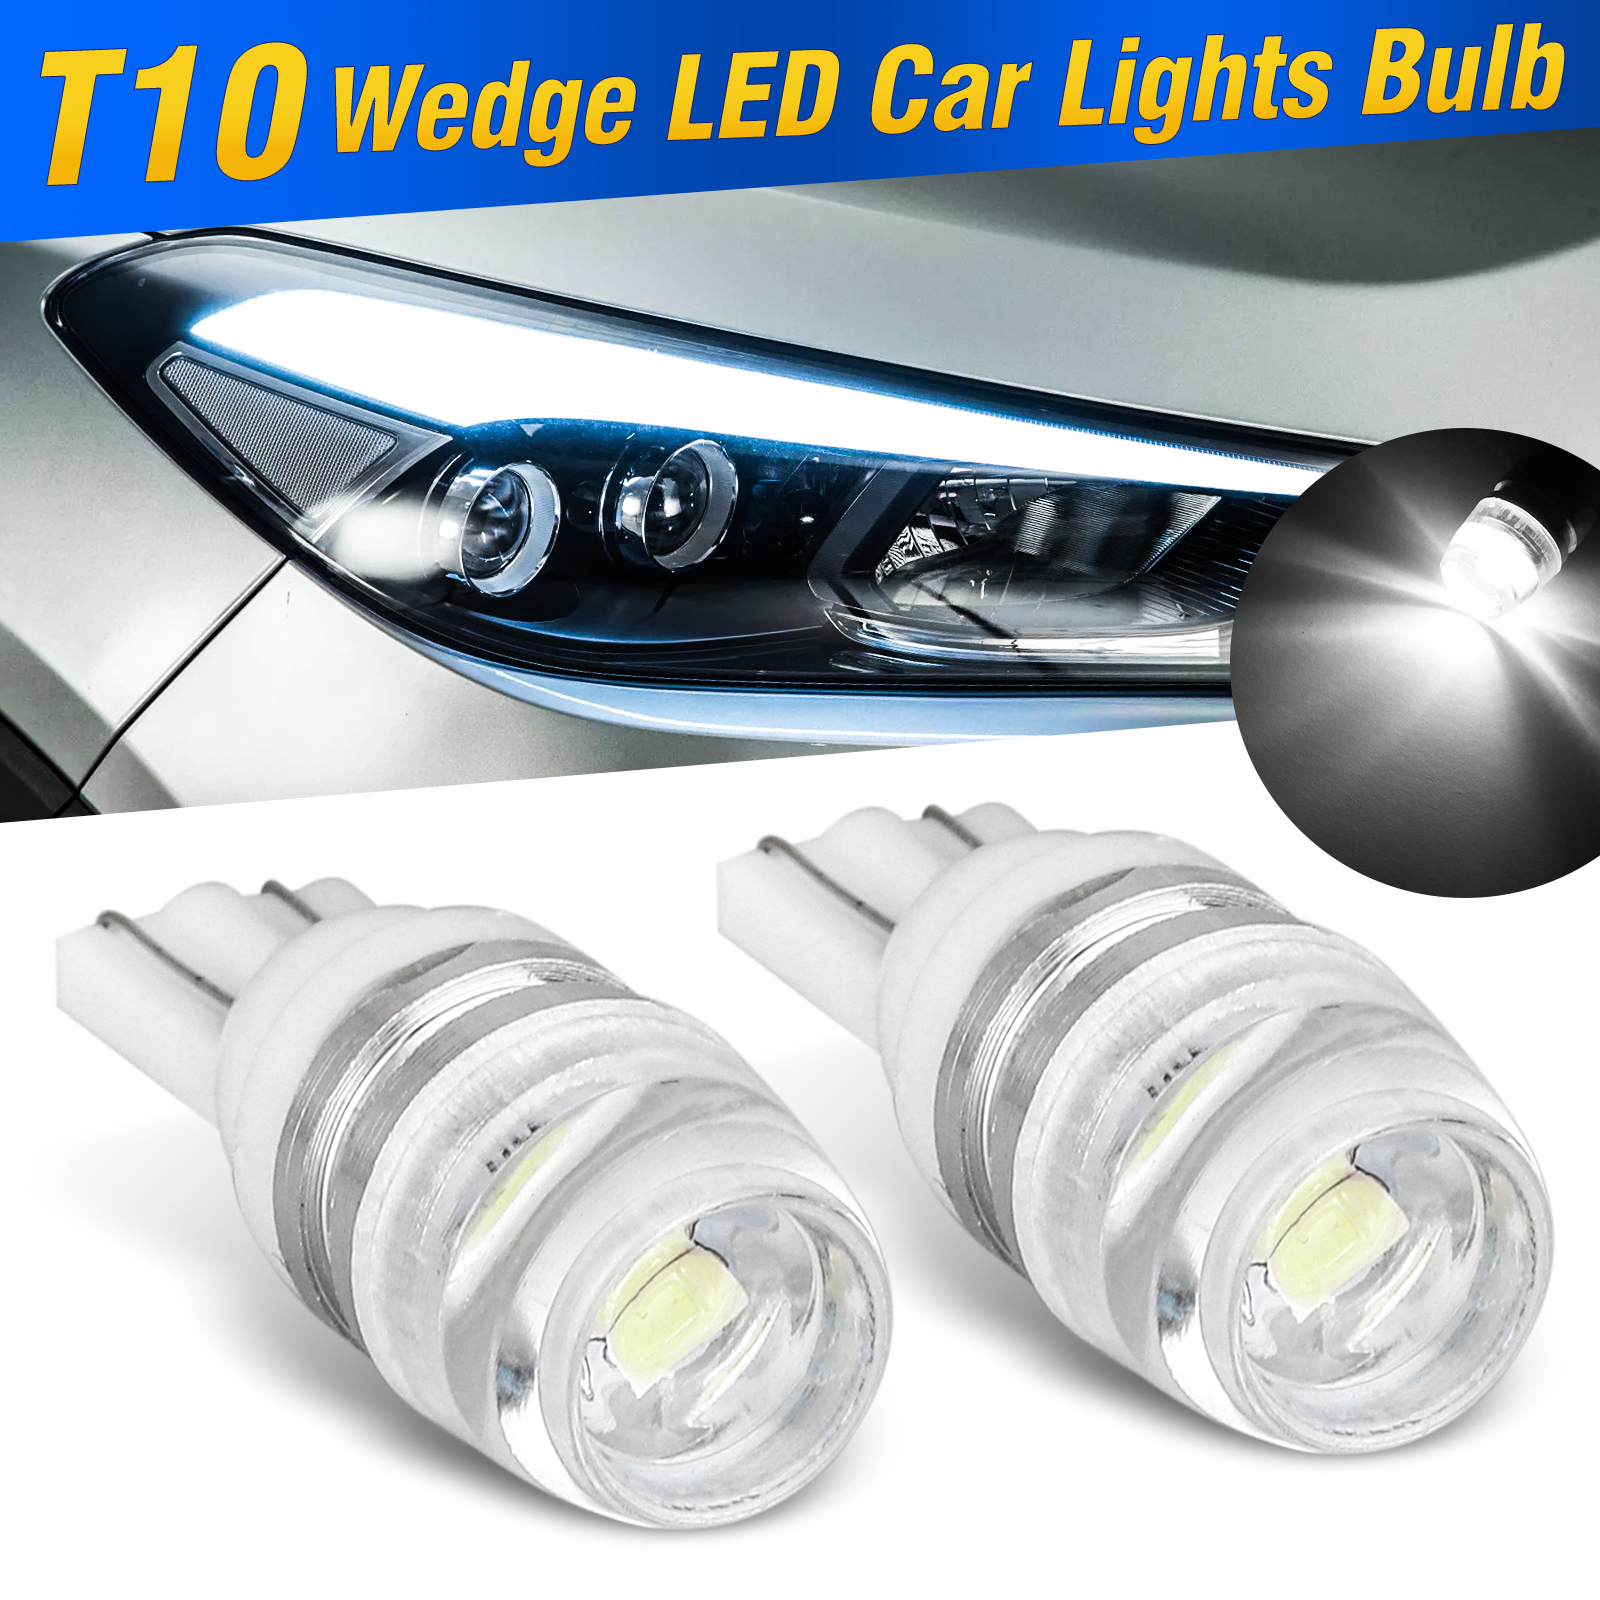 White LED Car Truck RV Number Plate Dome Walkway Light Lamp Auto Lighting